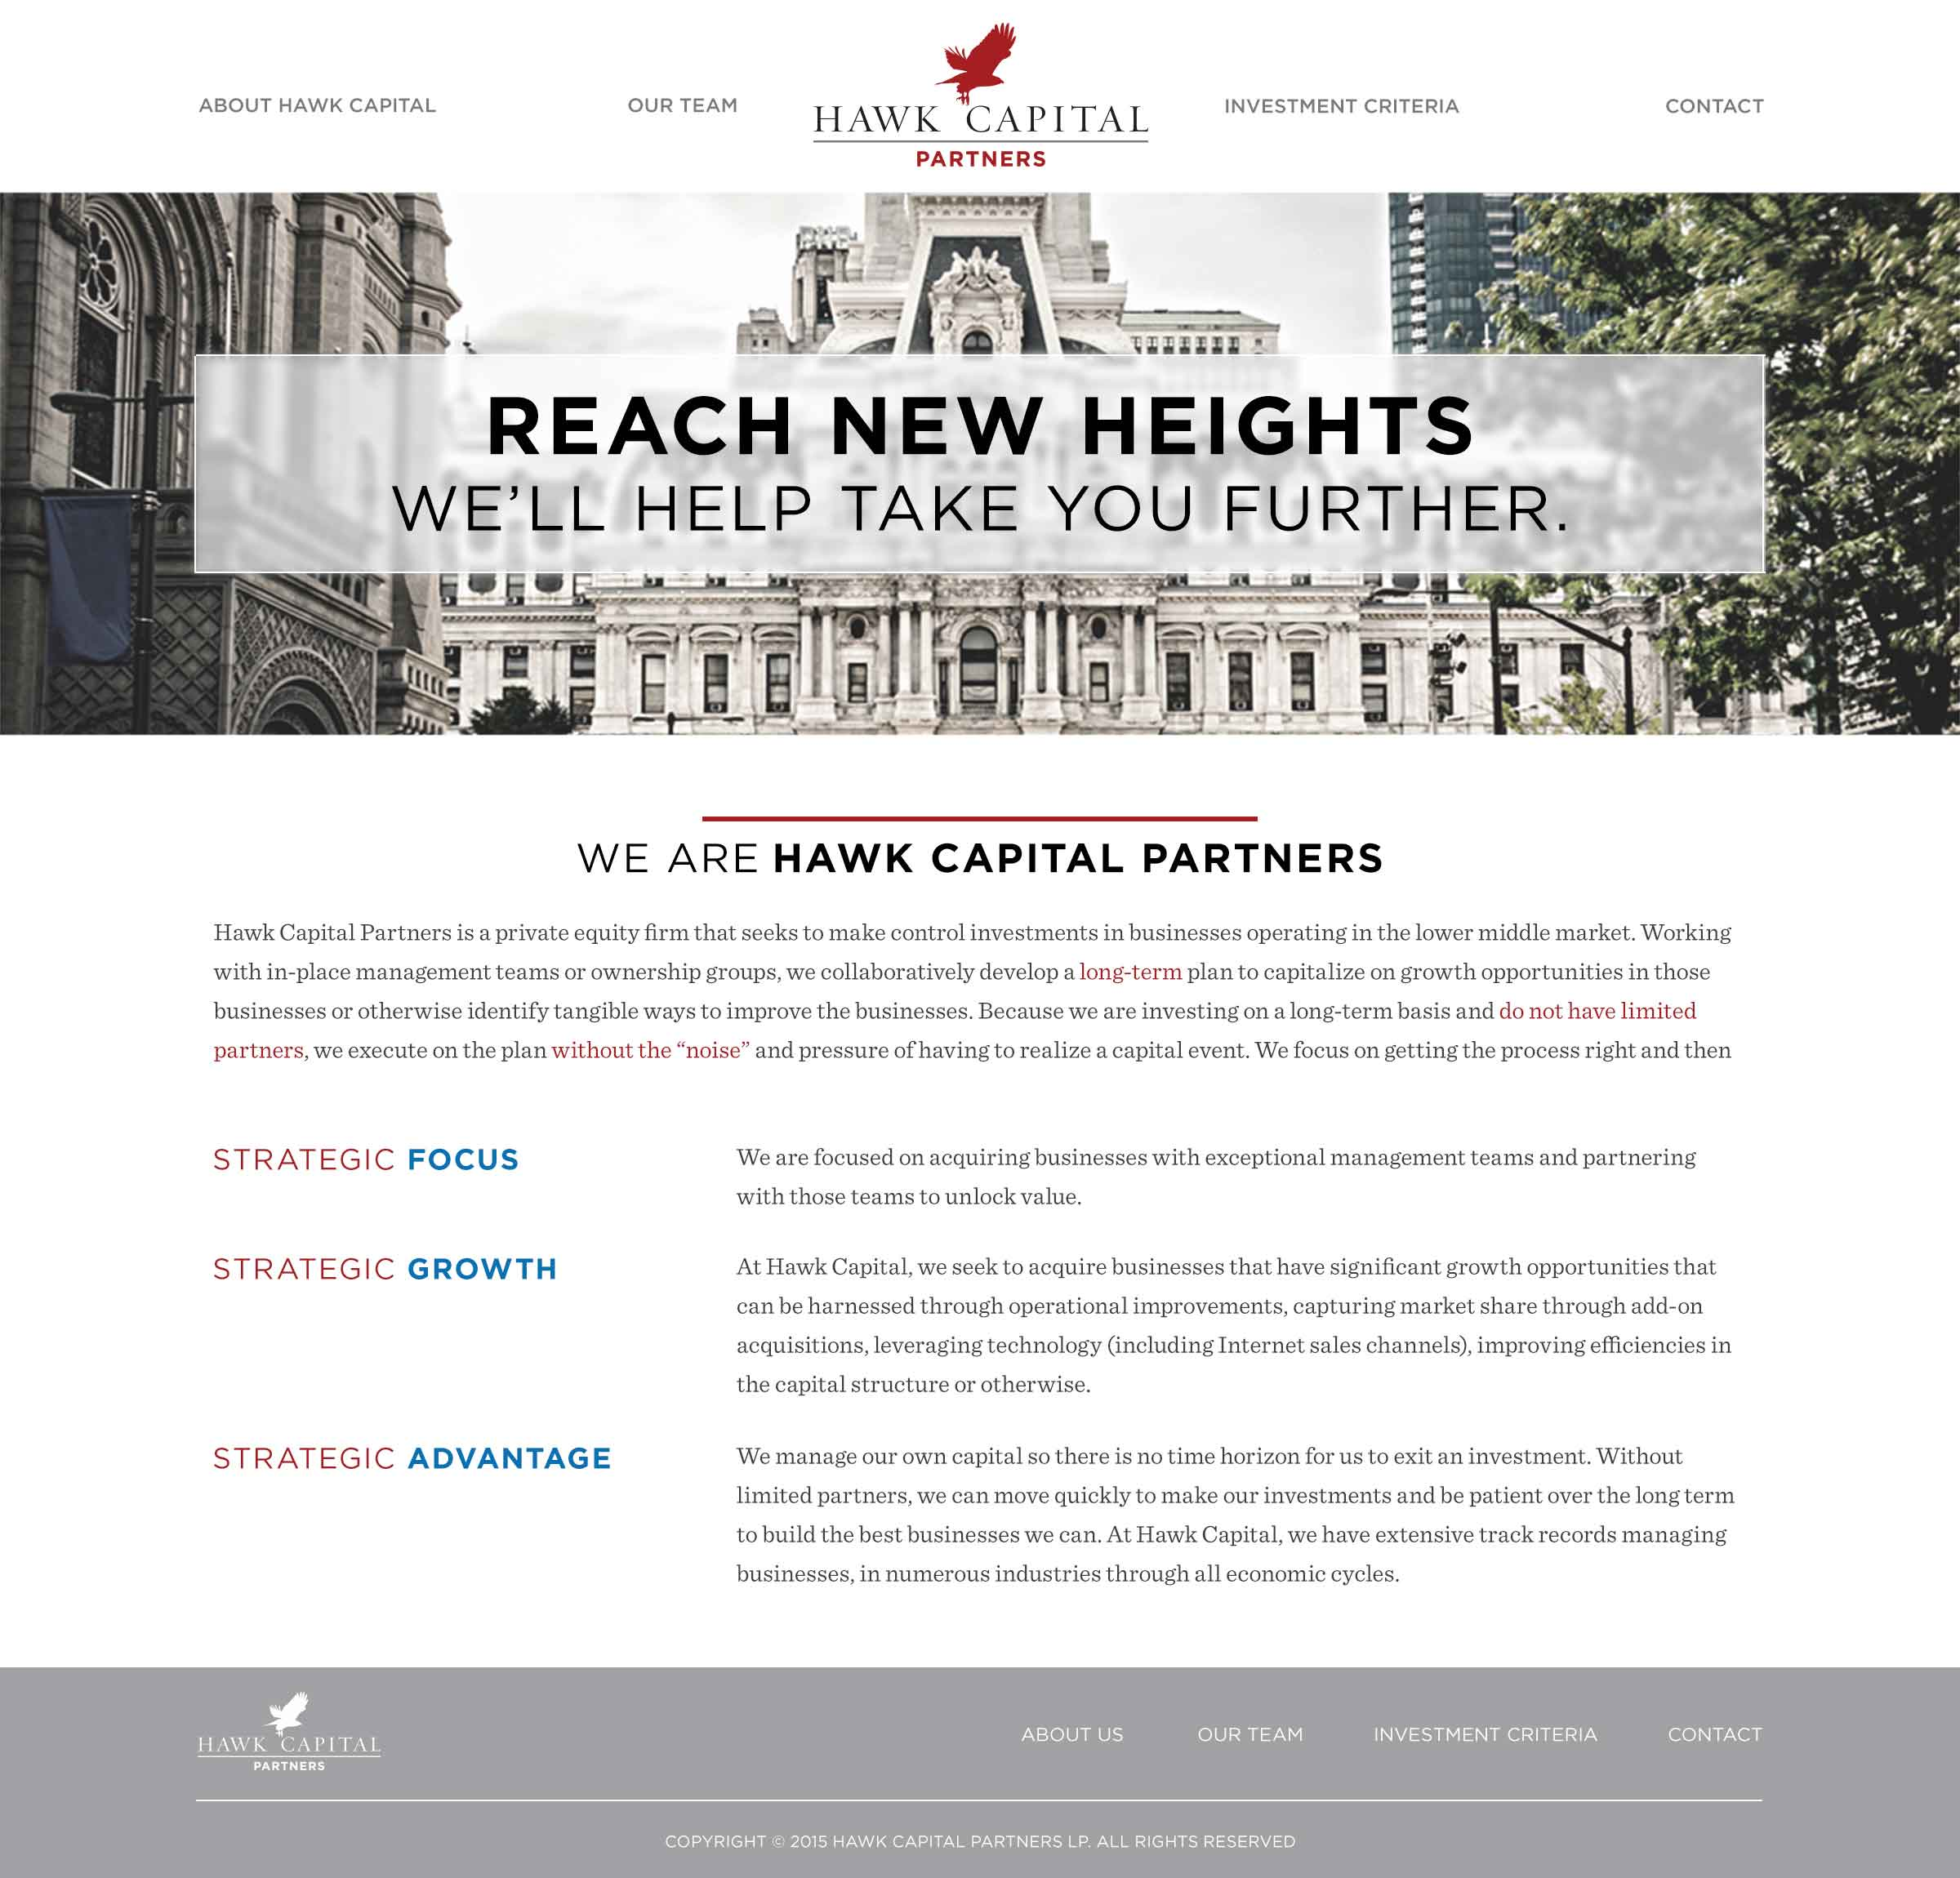 Hawk Capital home page design